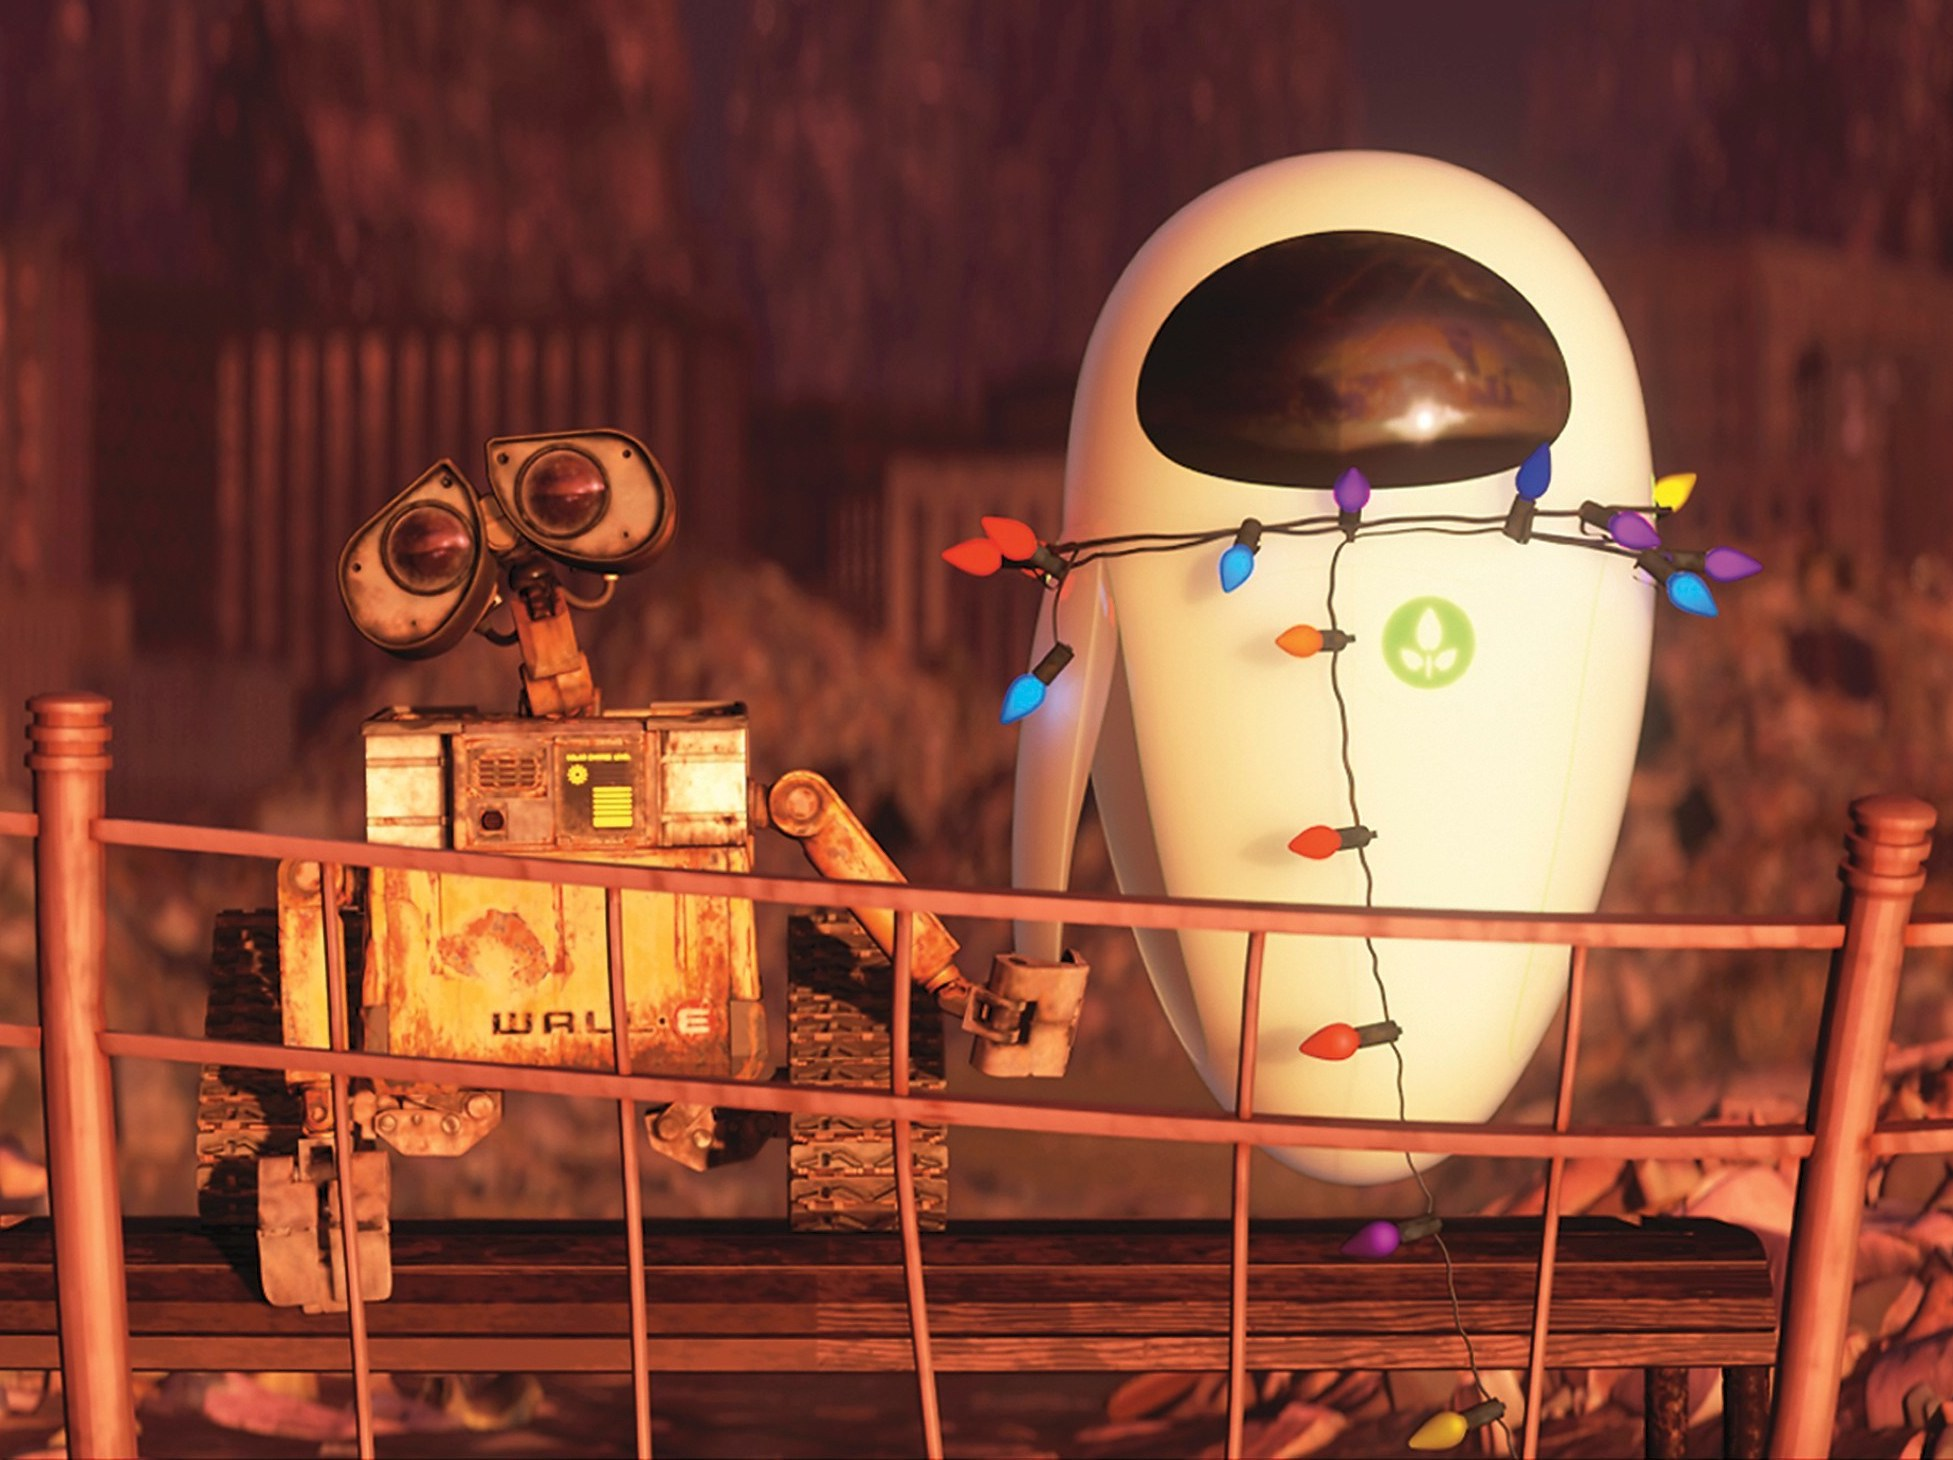 Wall-E and Eve from the movie Wall-E.